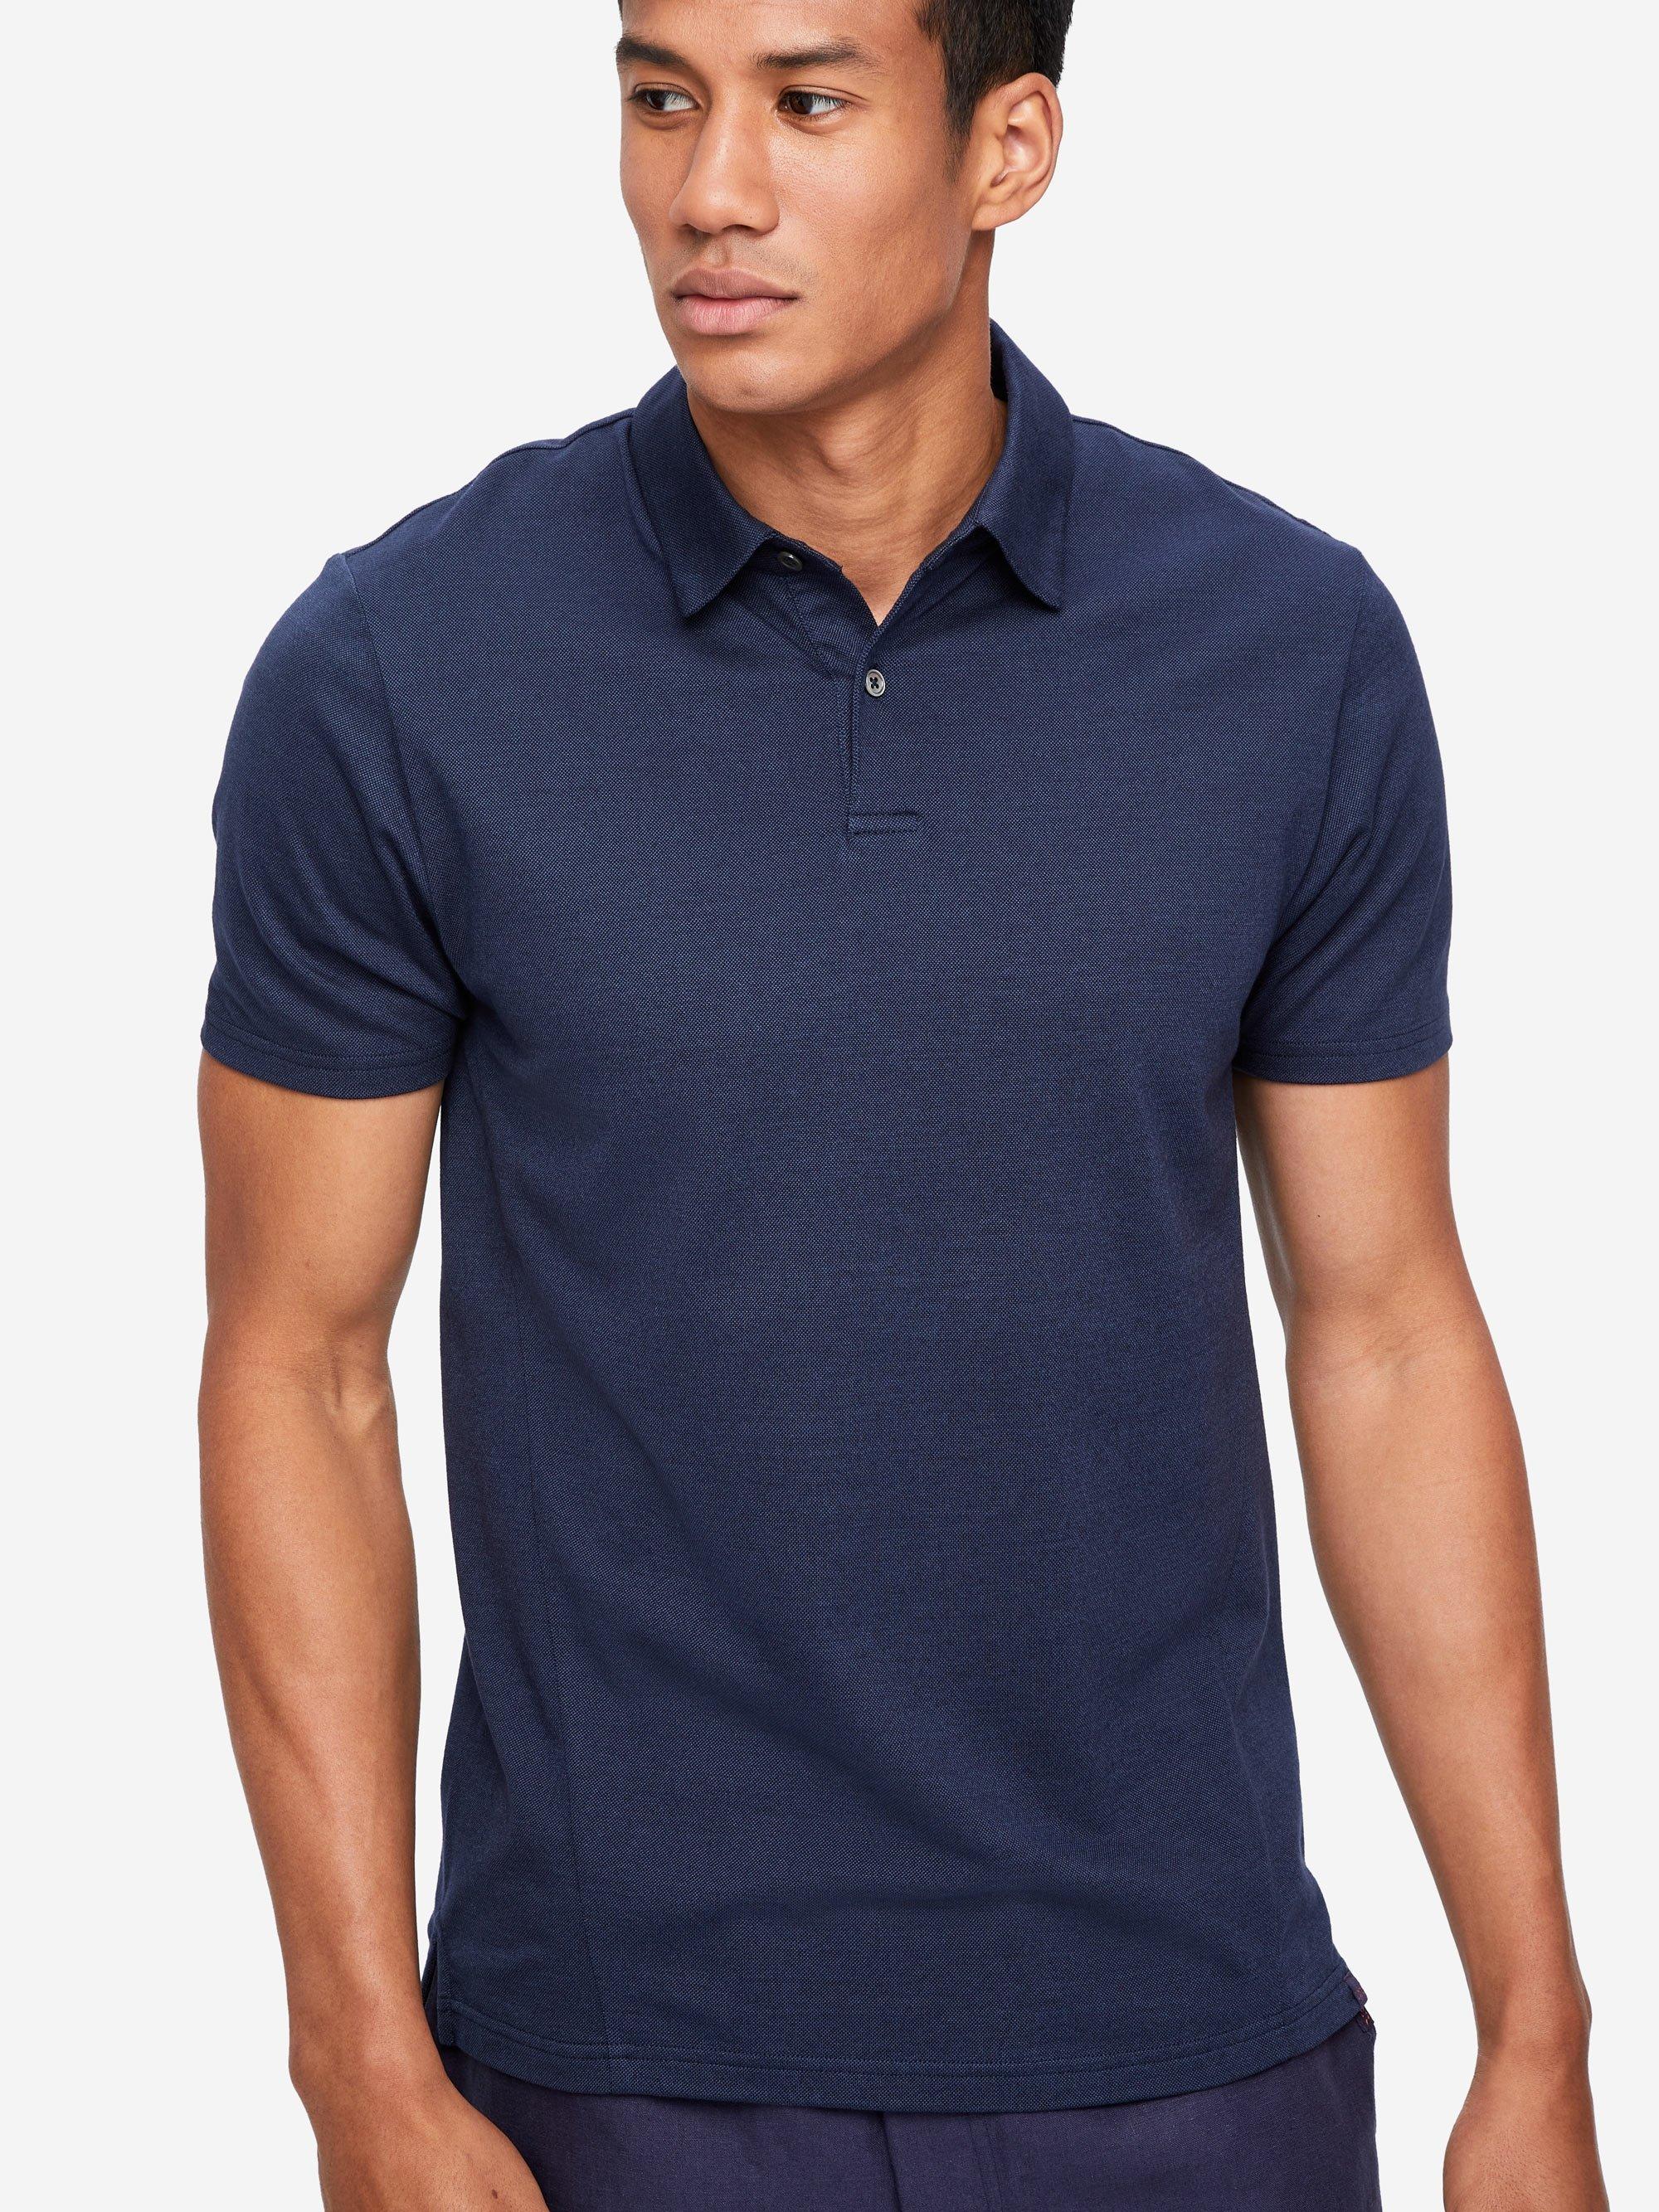 Men's Short Sleeve Polo Shirt Ramsay 2 Pique Cotton Tencel Navy